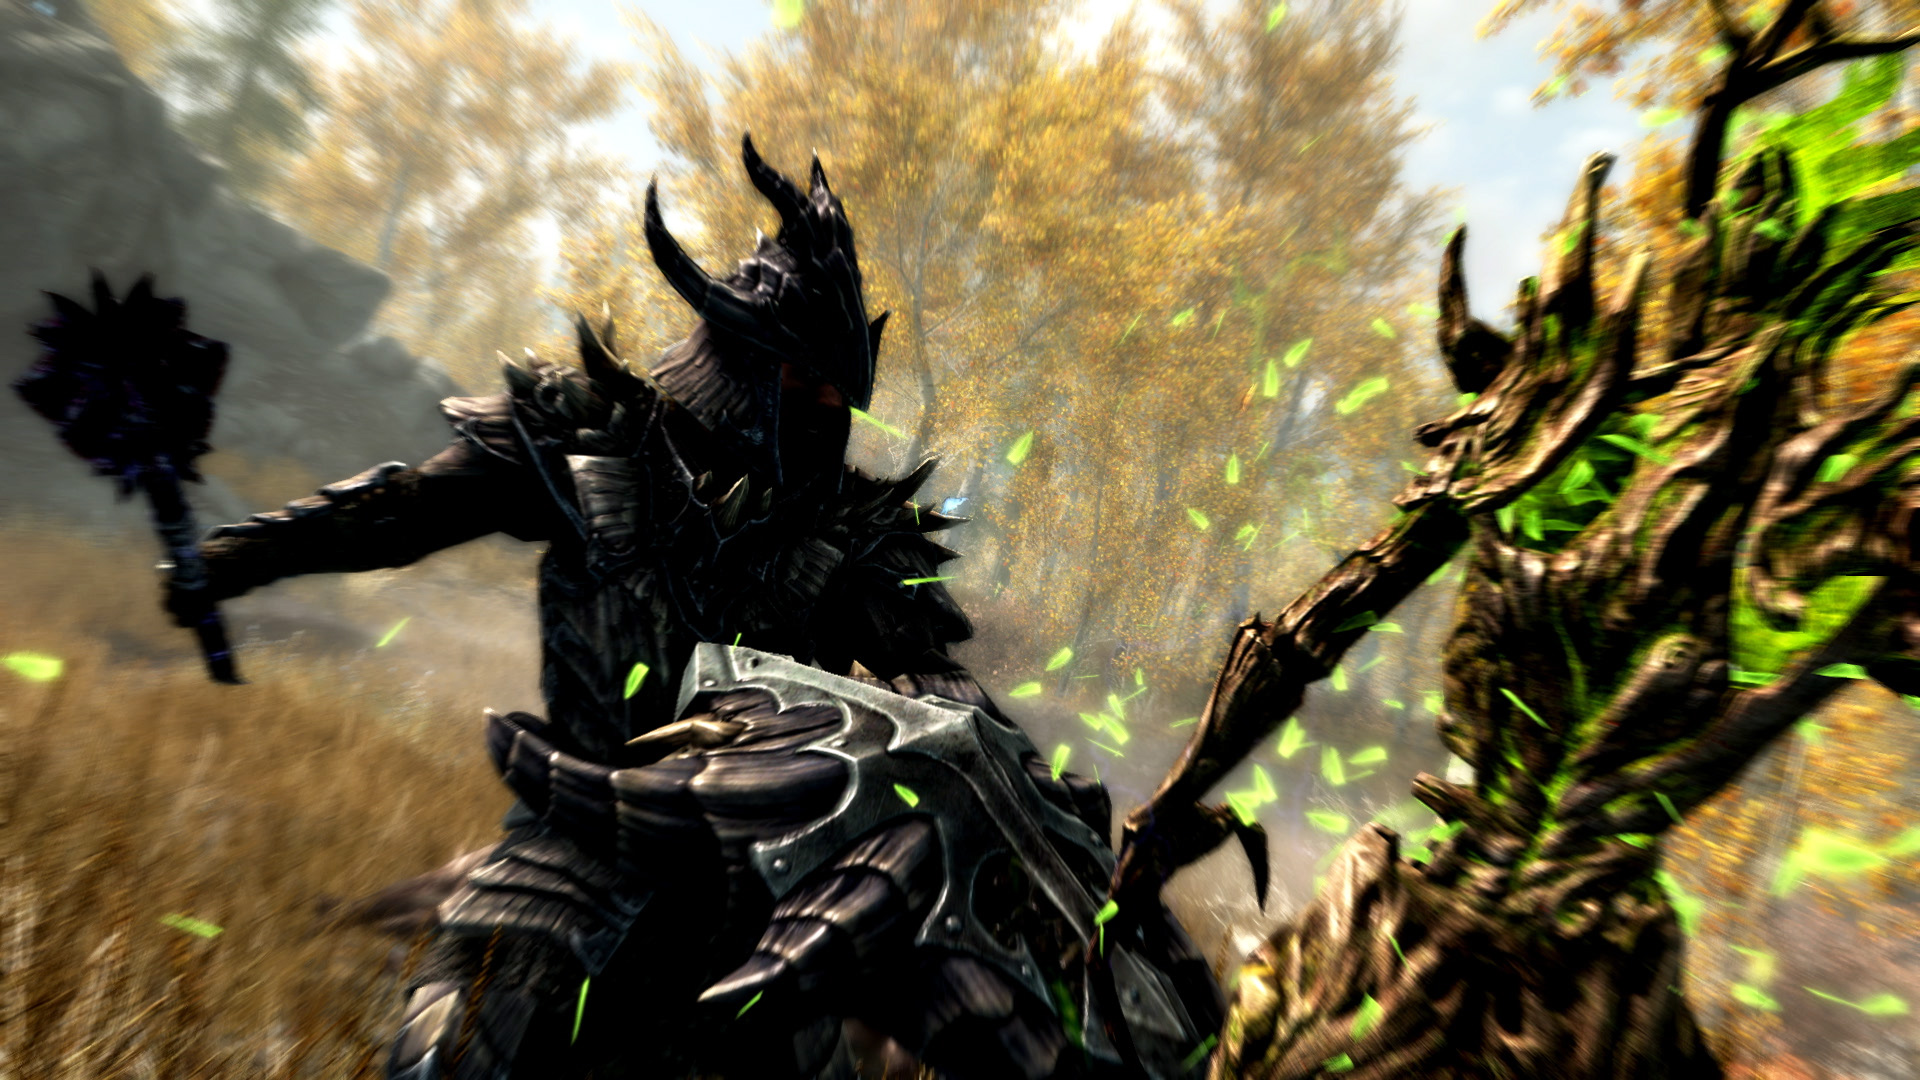 Skyrim Special Edition system requirements are a lot higher